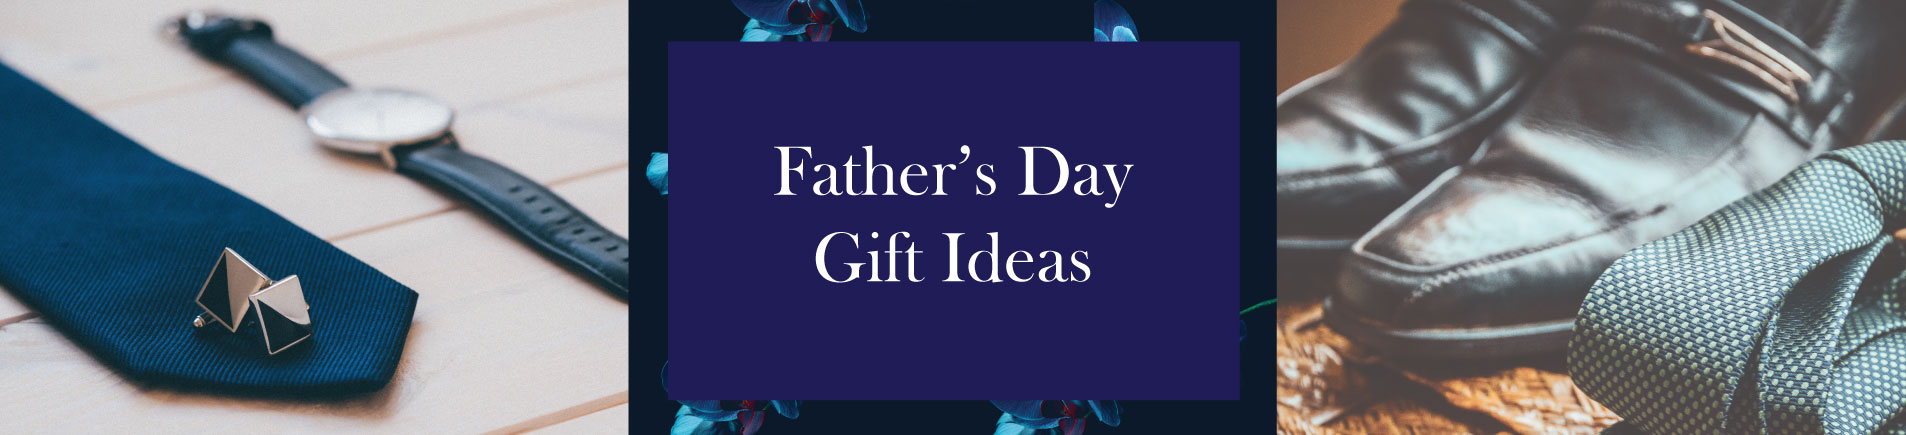 H10 Father's Day Gift Ideas for Singaporean Dads